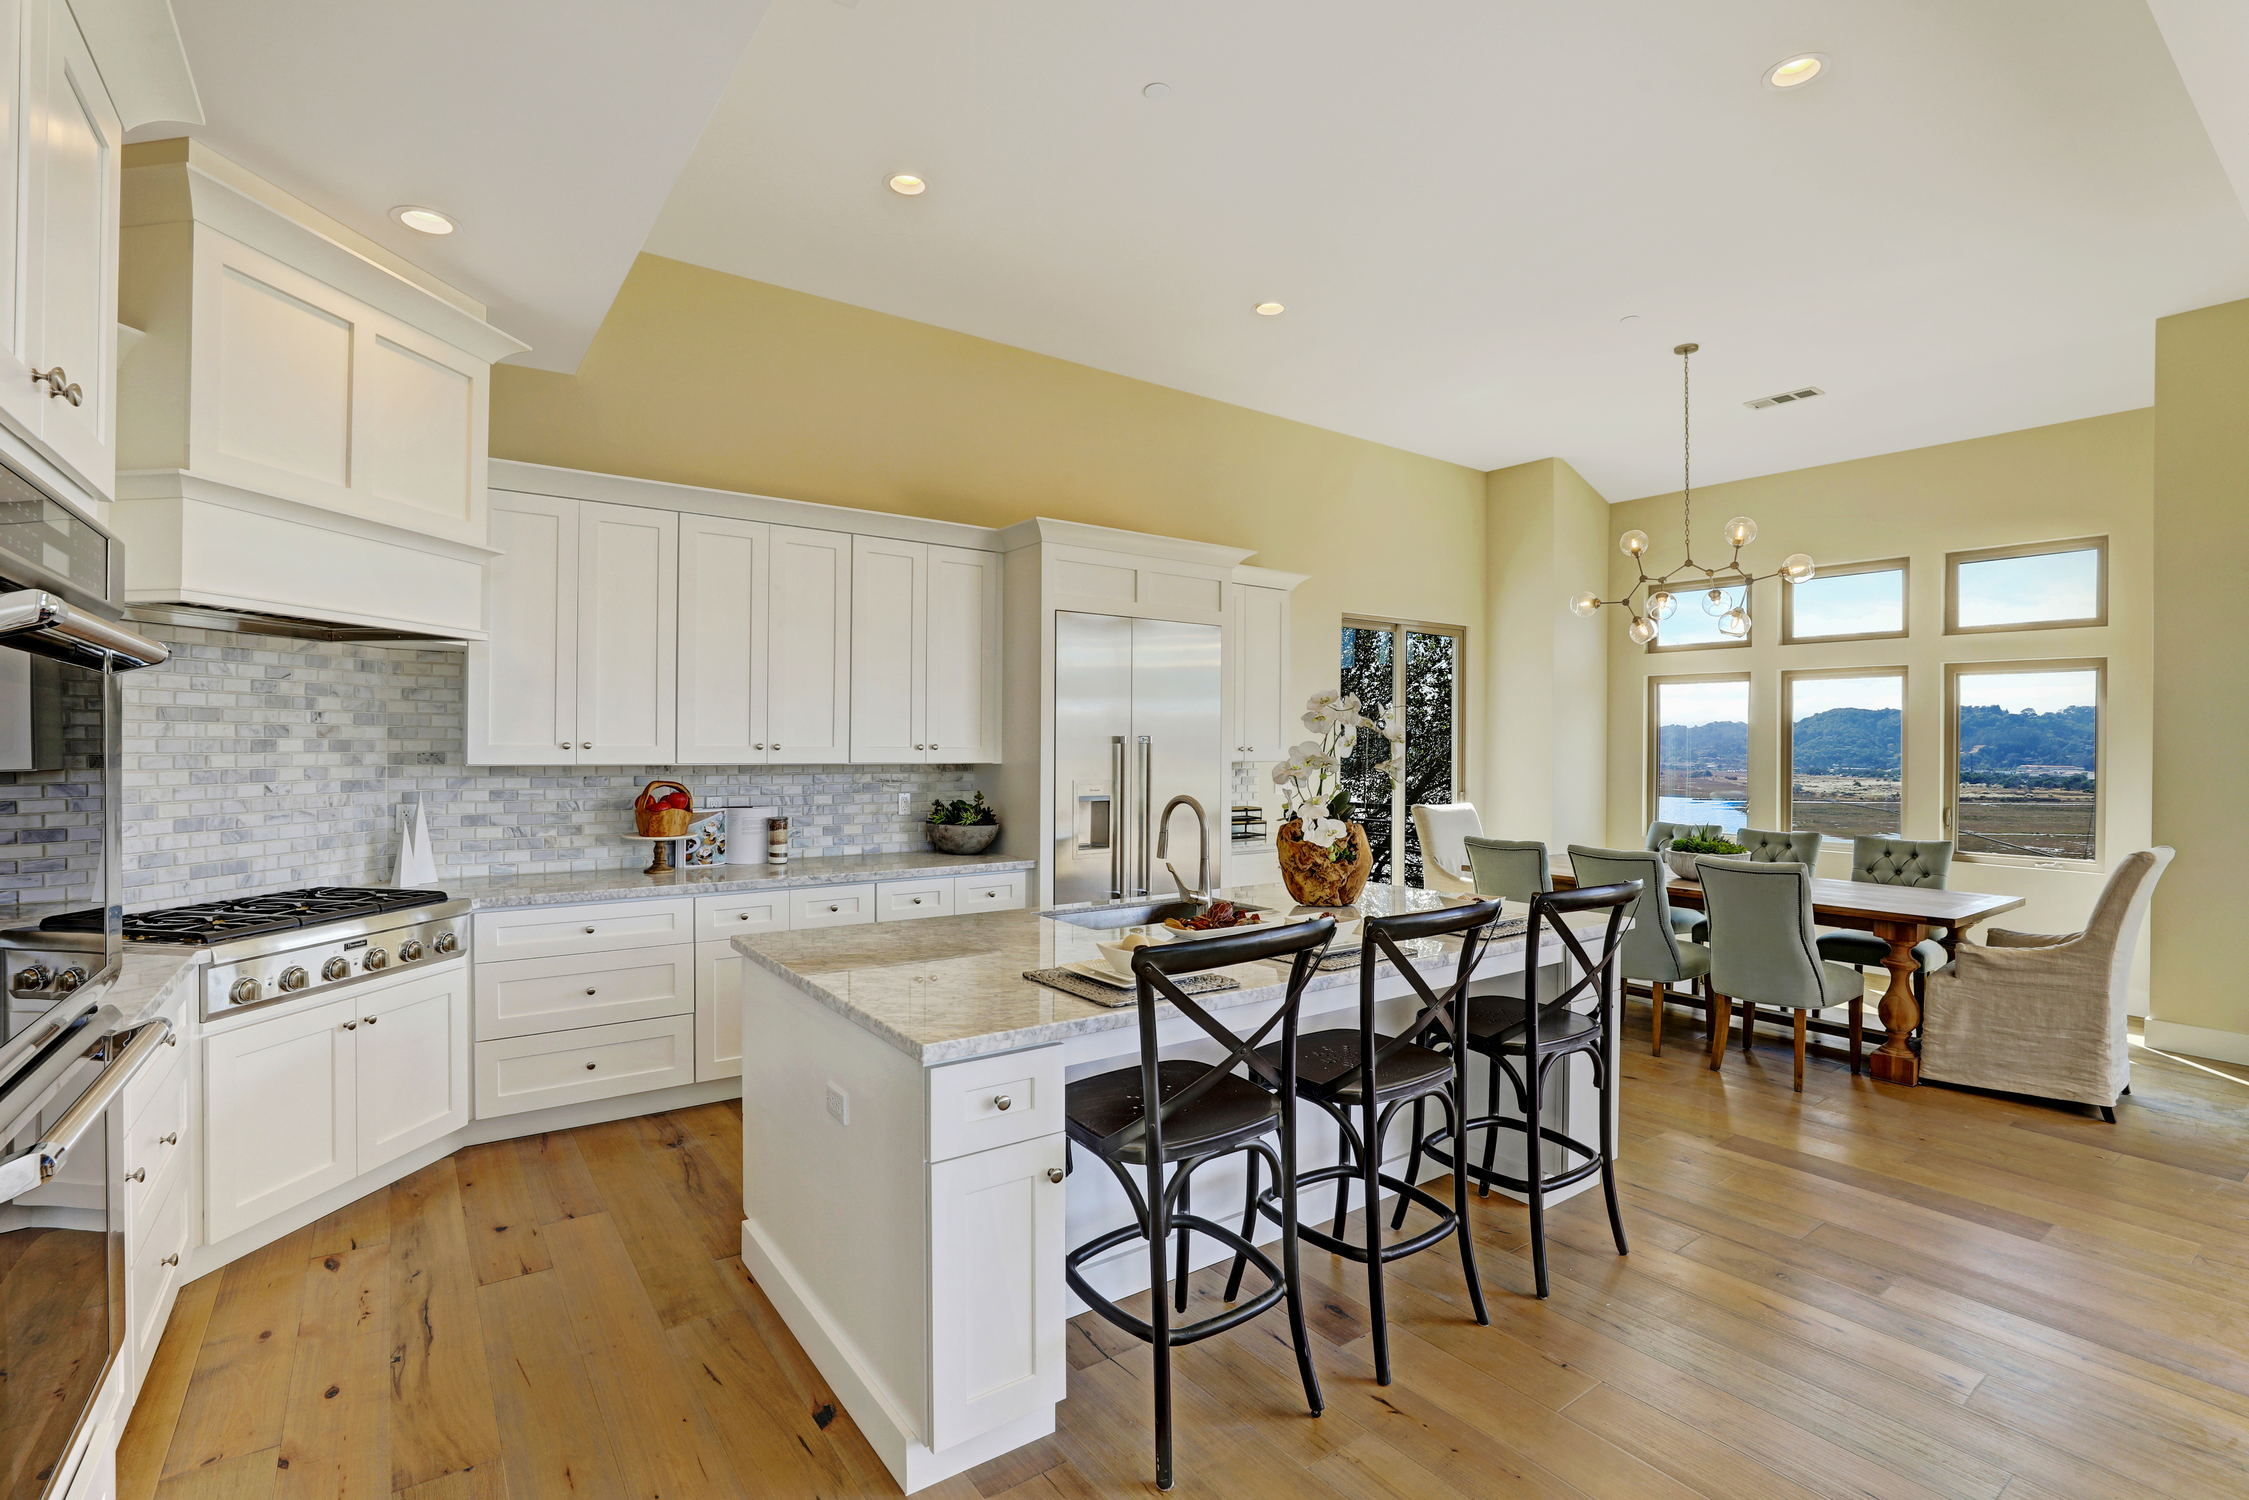 31 Drakes Cove, Larkspur Homes for Sale33 MLS - Own Marin with Compass - Mill Valley Realtor.jpg